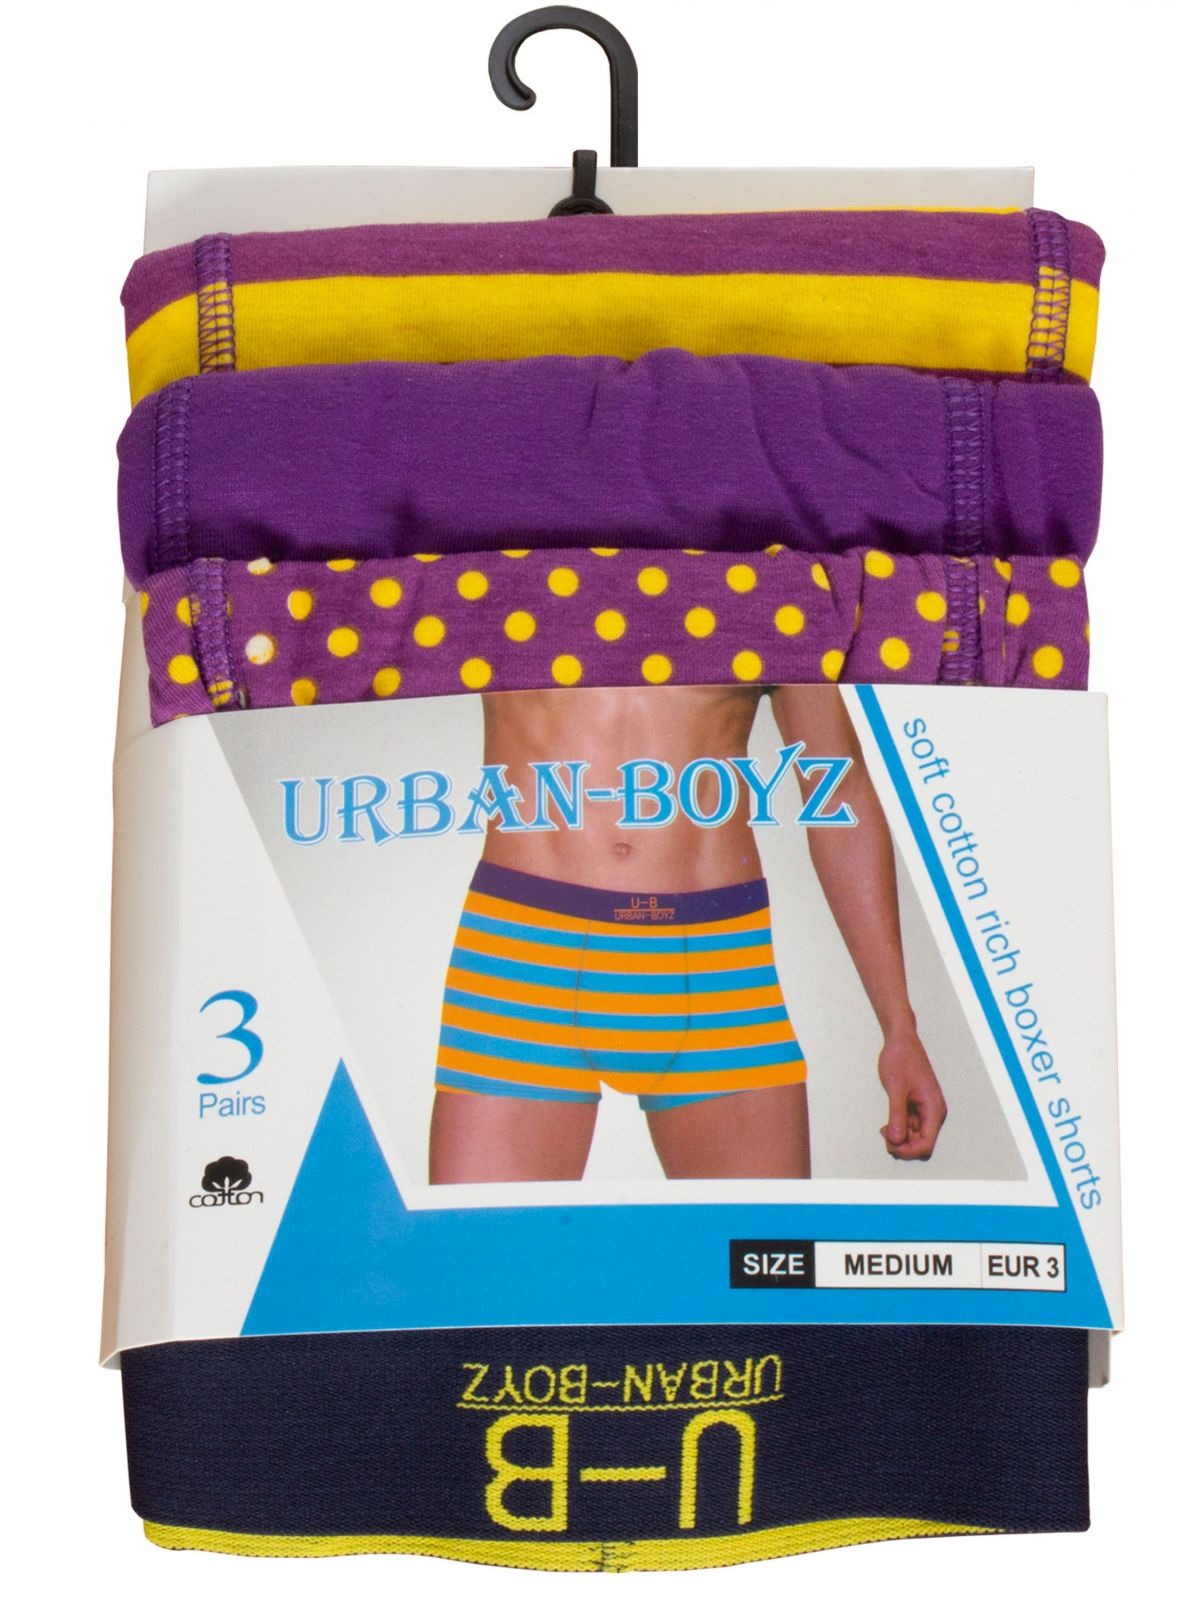 Accessories   Mens Cotton Boxer Shorts Assorted 3 & 4 Pack